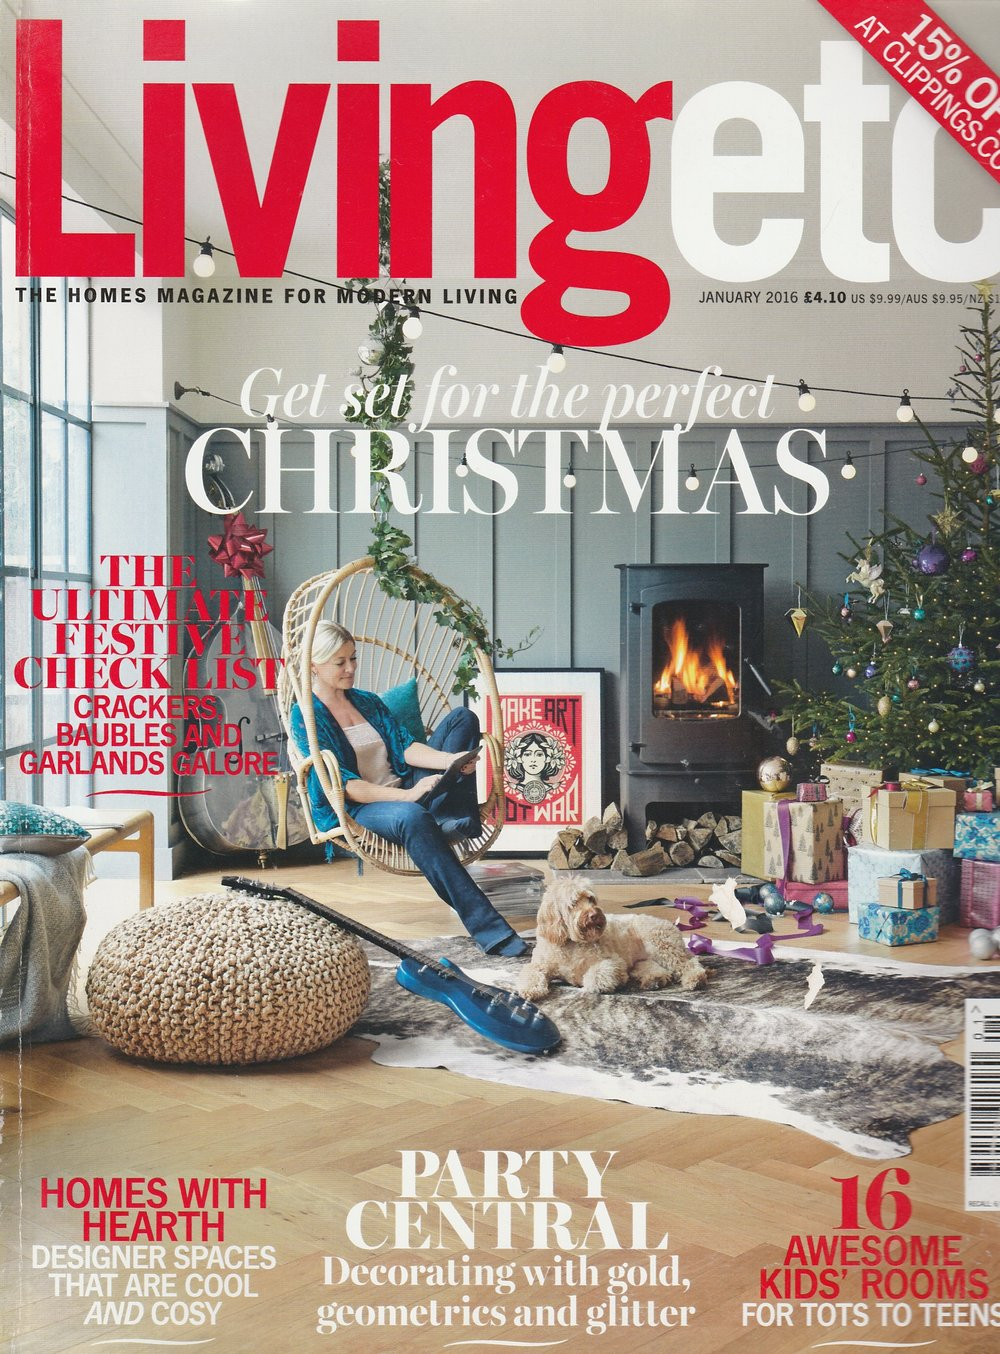 LivingEtc - Jo Davies - 'One to Watch'Feature article hghlighting Jo Davies as 'a future design star'Jan 2016